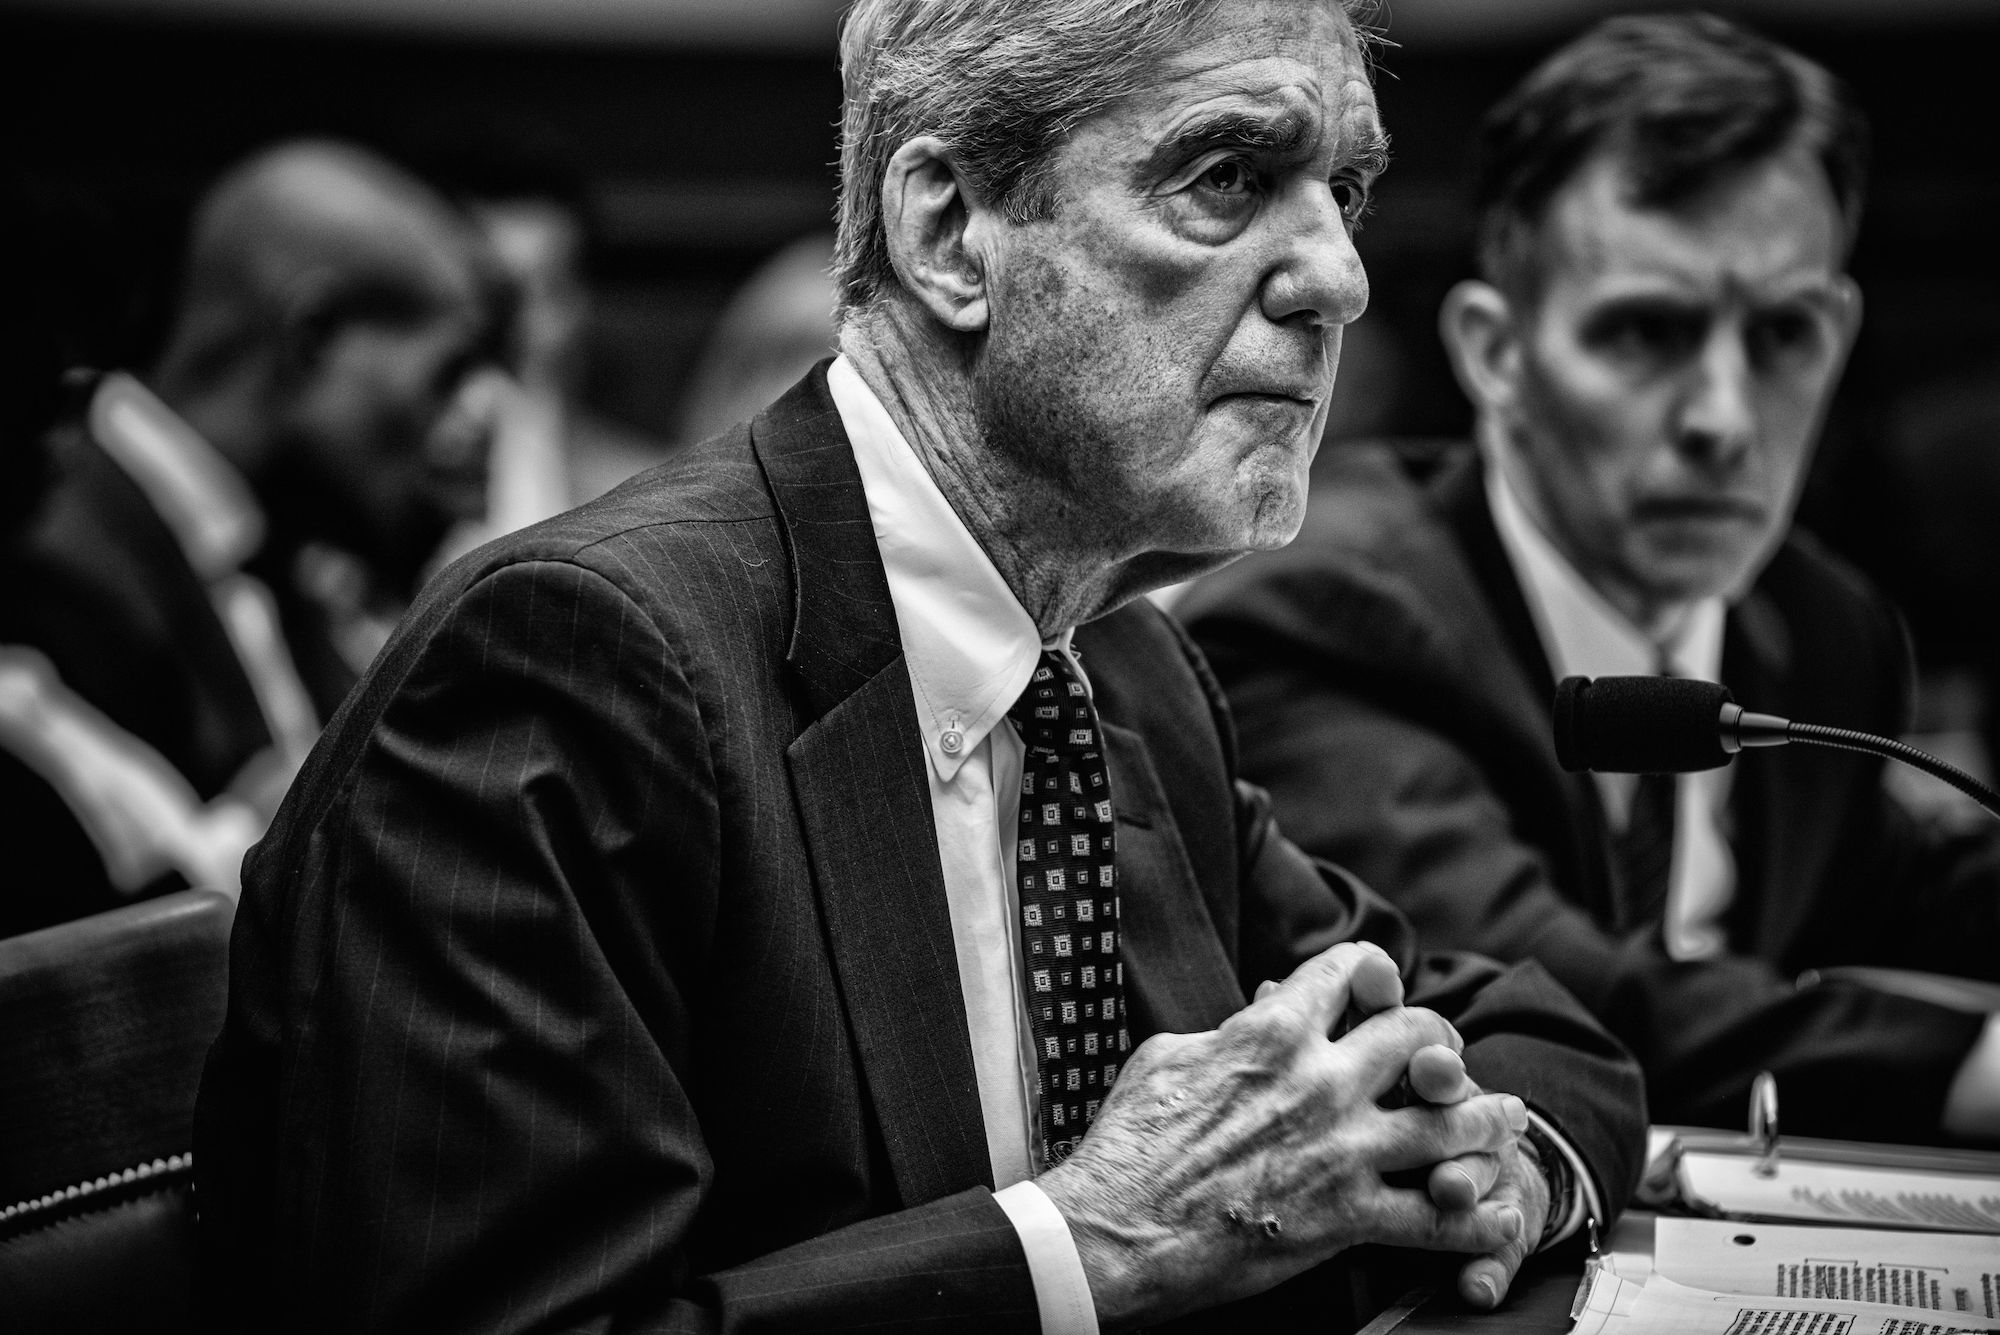 Day 915: Former Special counsel Robert Mueller testifies before the House Judiciary Committee in the Rayburn House Office Building in Washington, DC on July 24th, 2019.